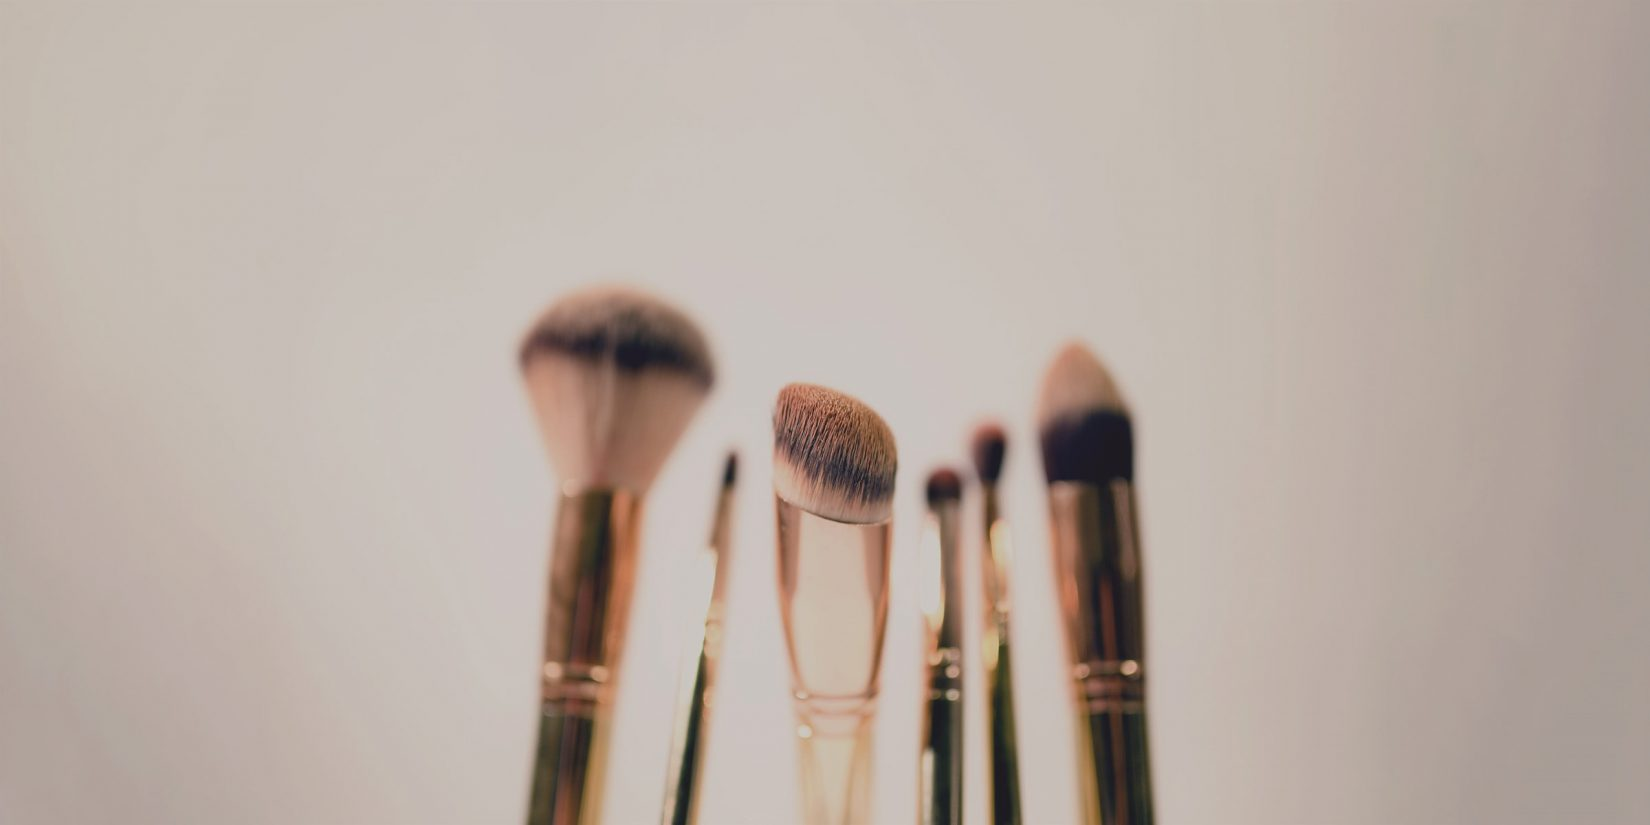 The Best Makeup Brushes For Flawless Application Every Time